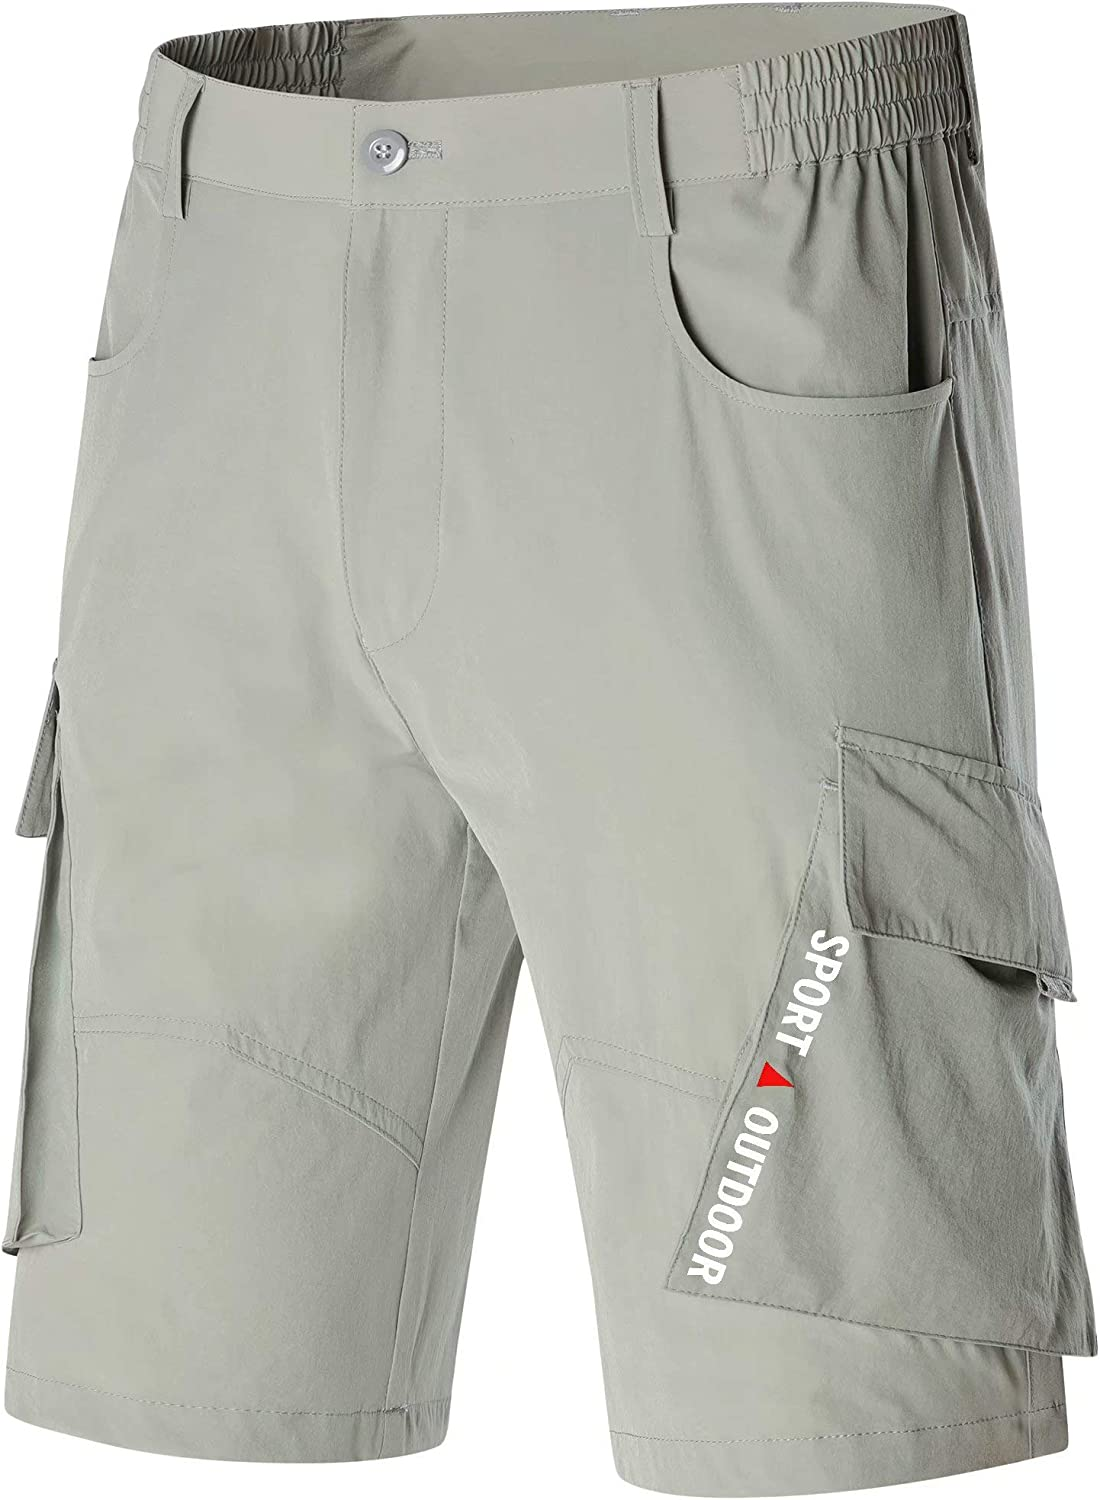 Mens Fresno Mall Max 48% OFF Tactical Shorts Cargo Casaual Quick Short Hiking Dry